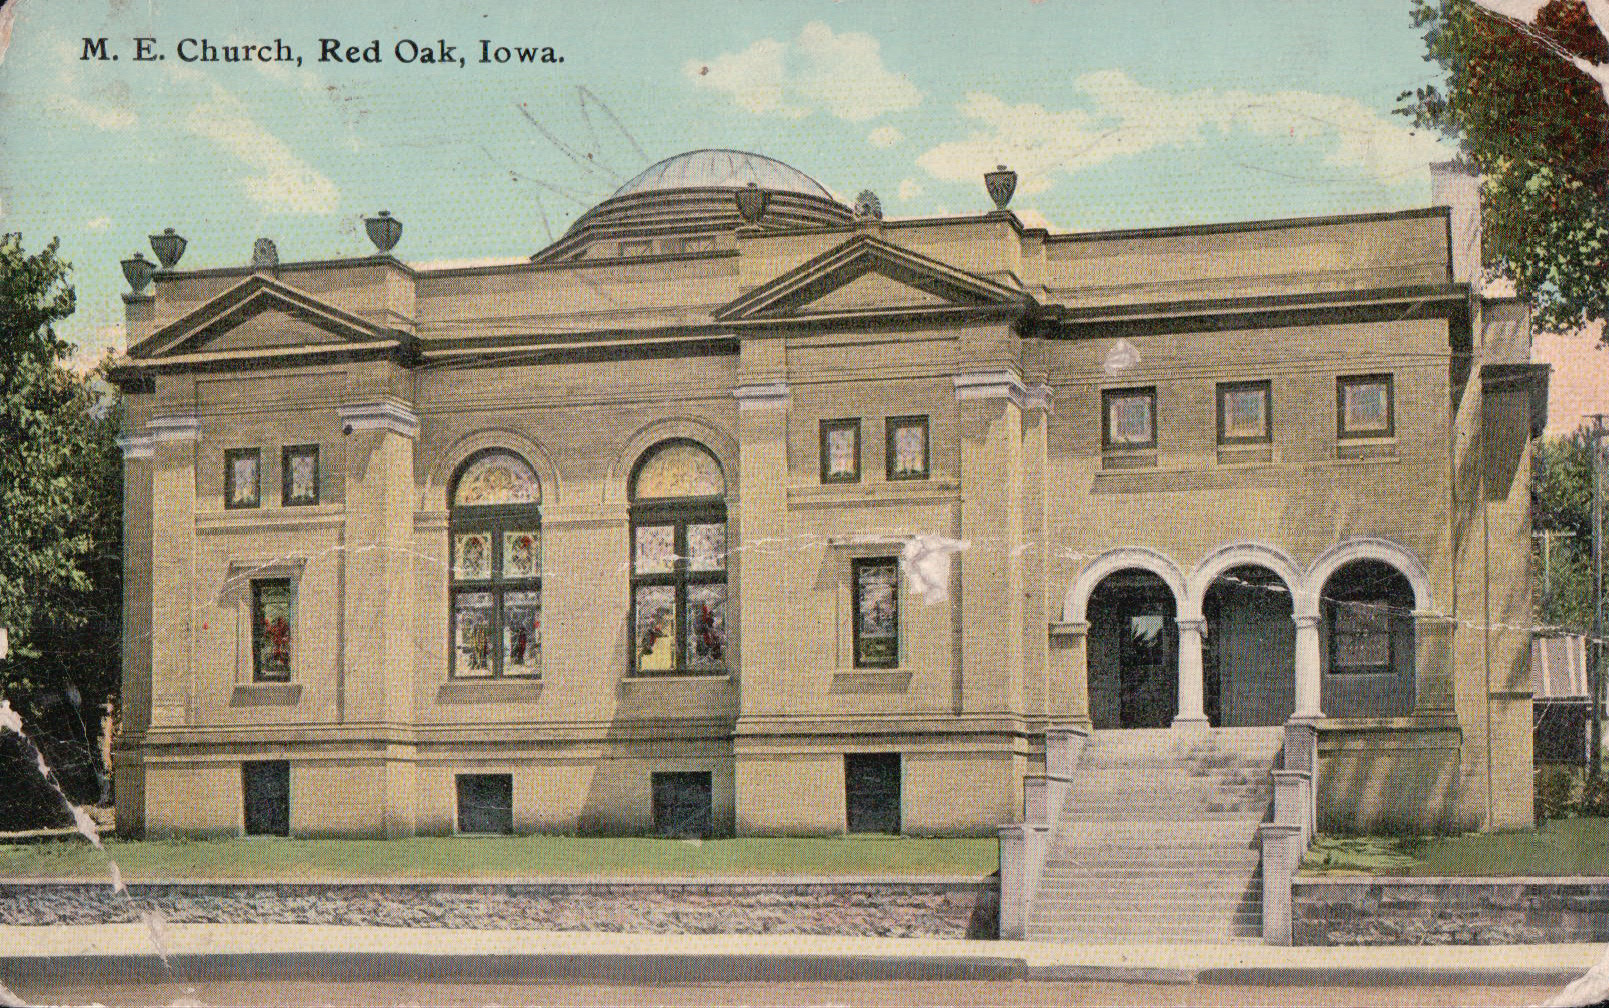 Red Oak, Iowa